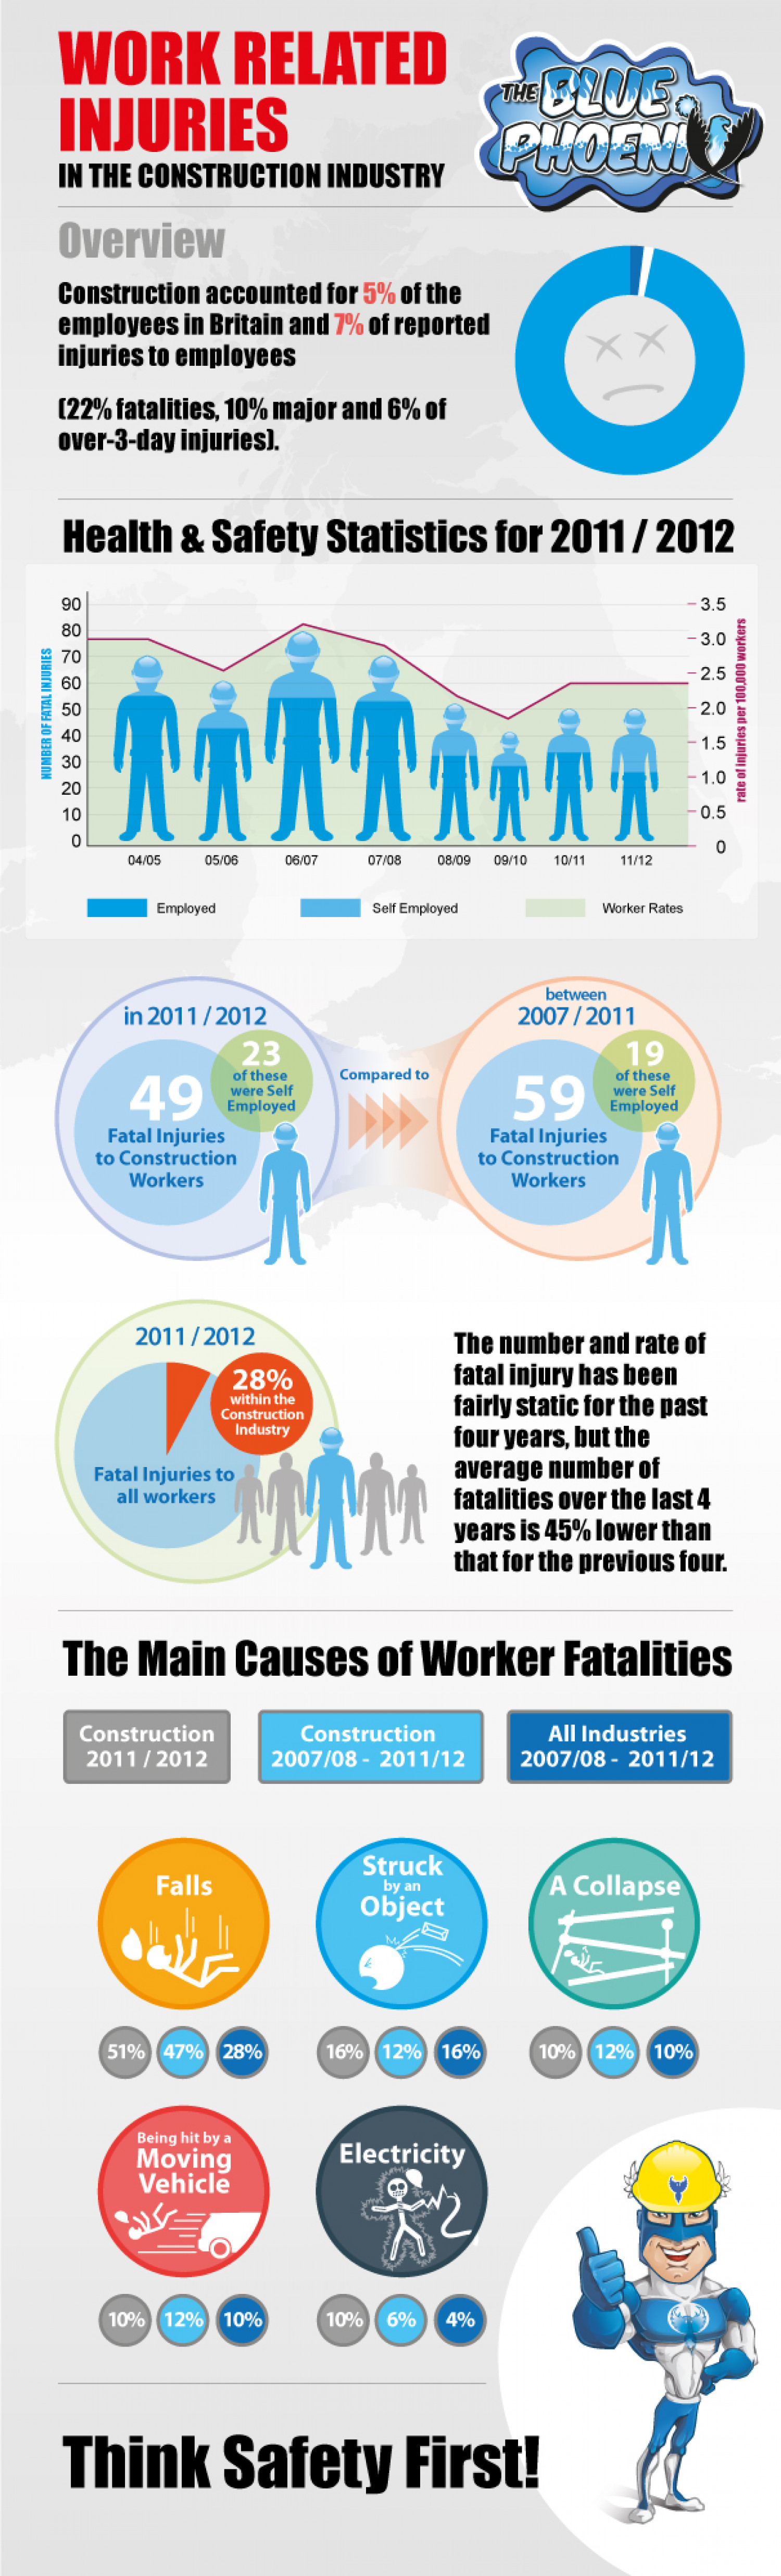 Work Related Injuries in the Construction Industry Infographic